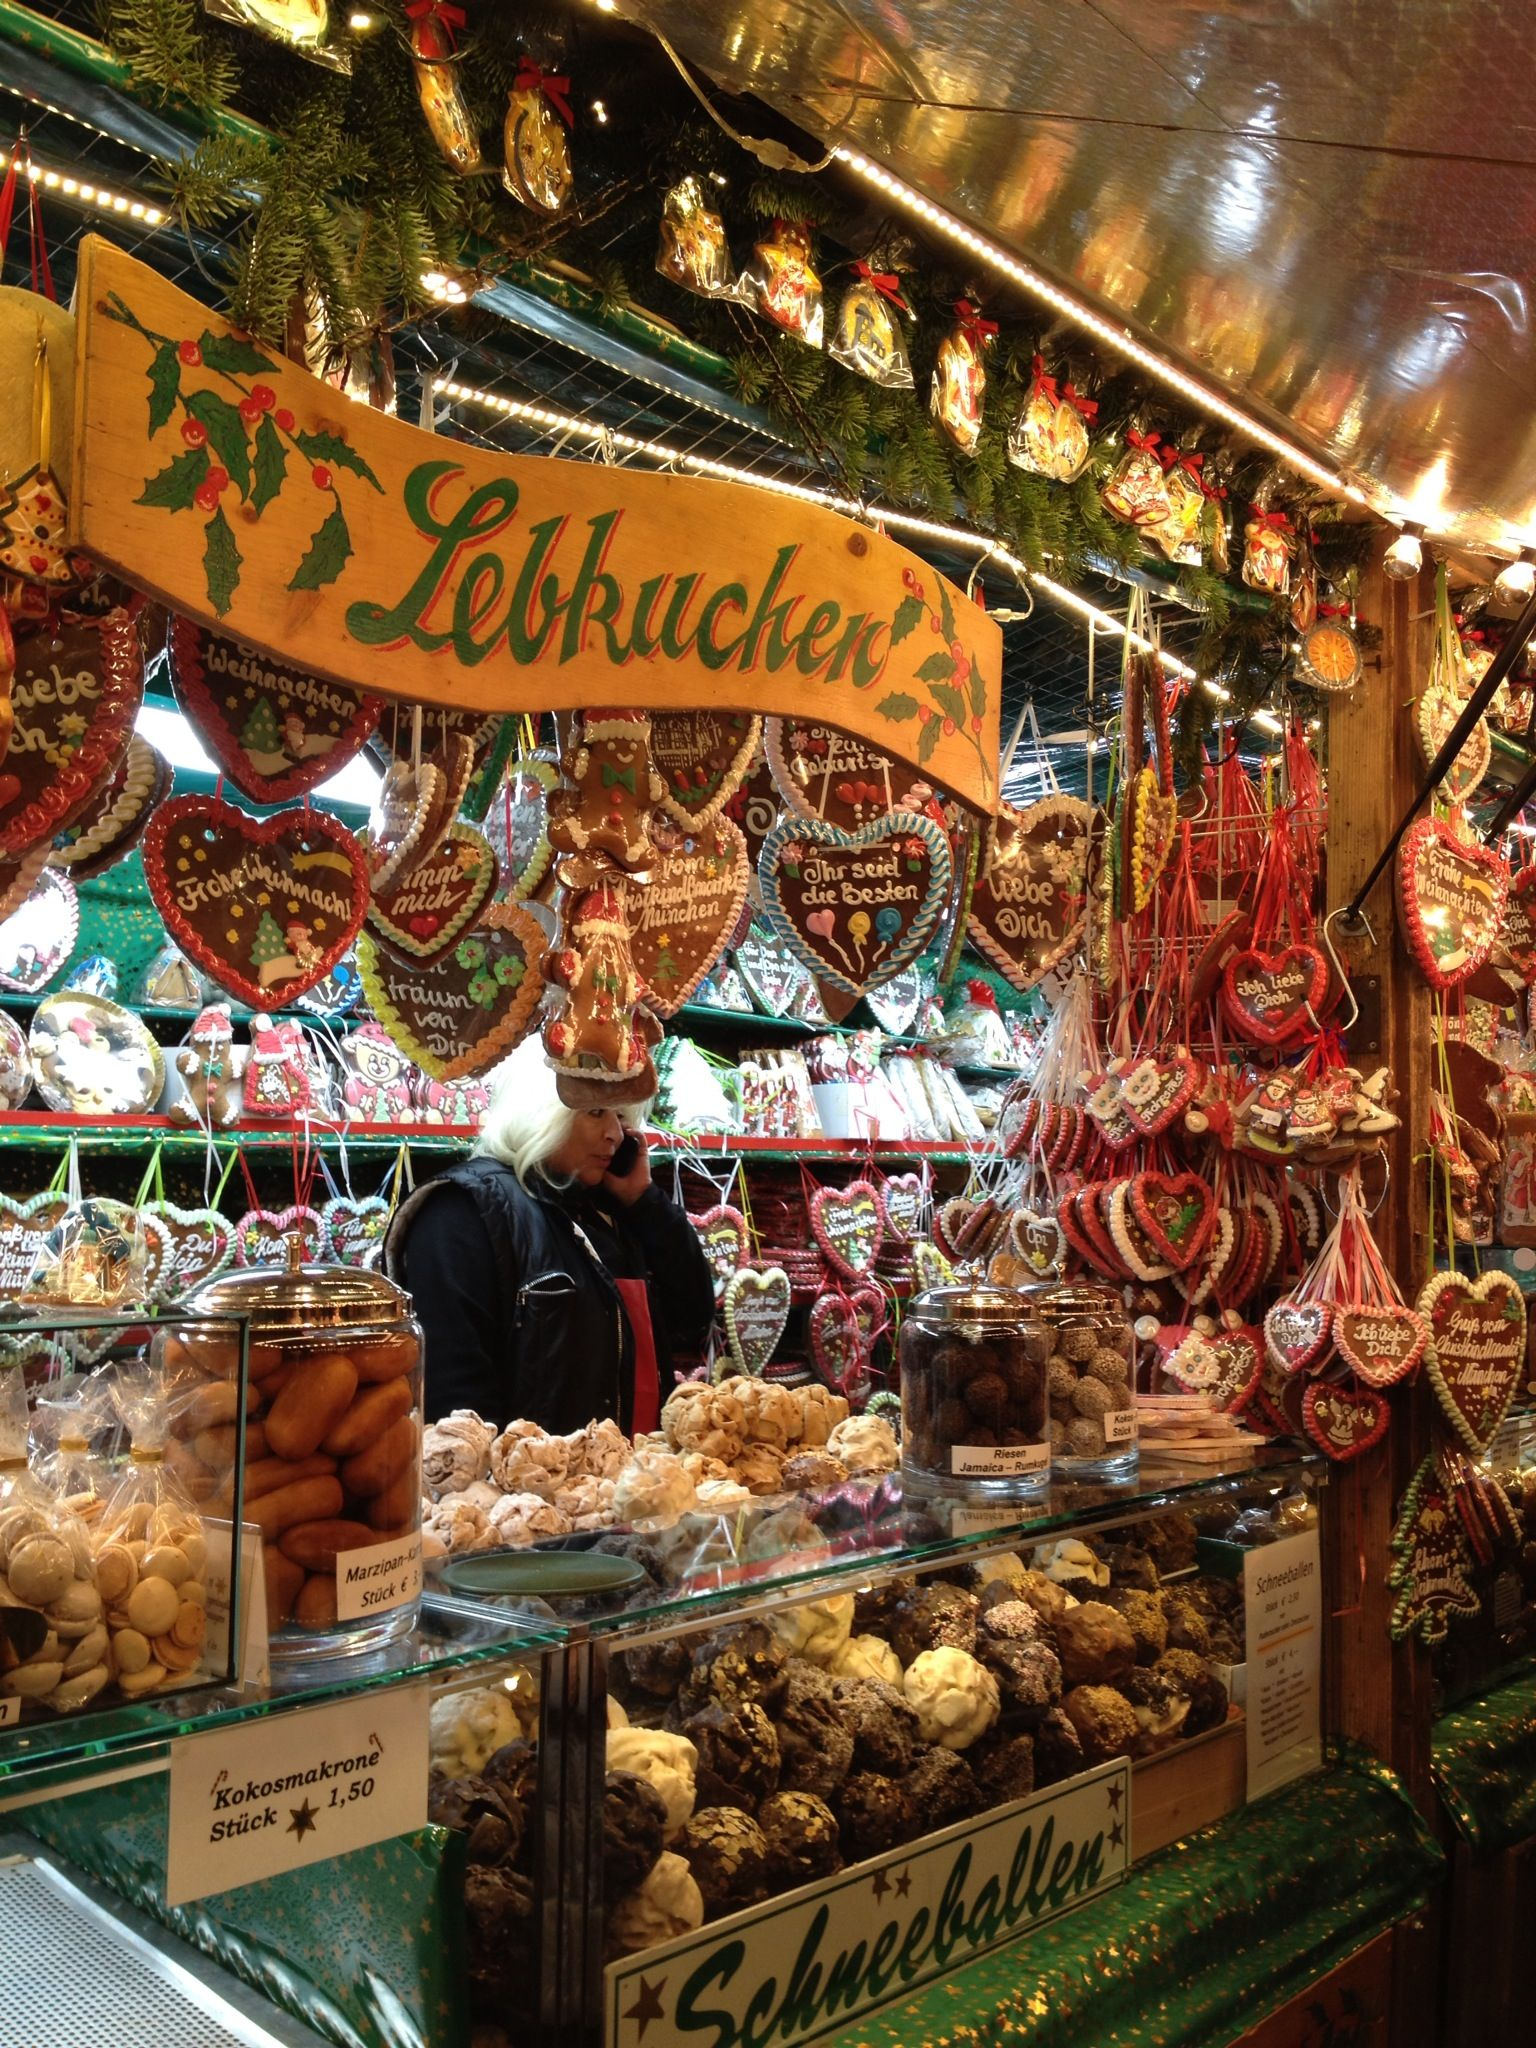 Munich Christmas market. Christmas Village in Baltimore is